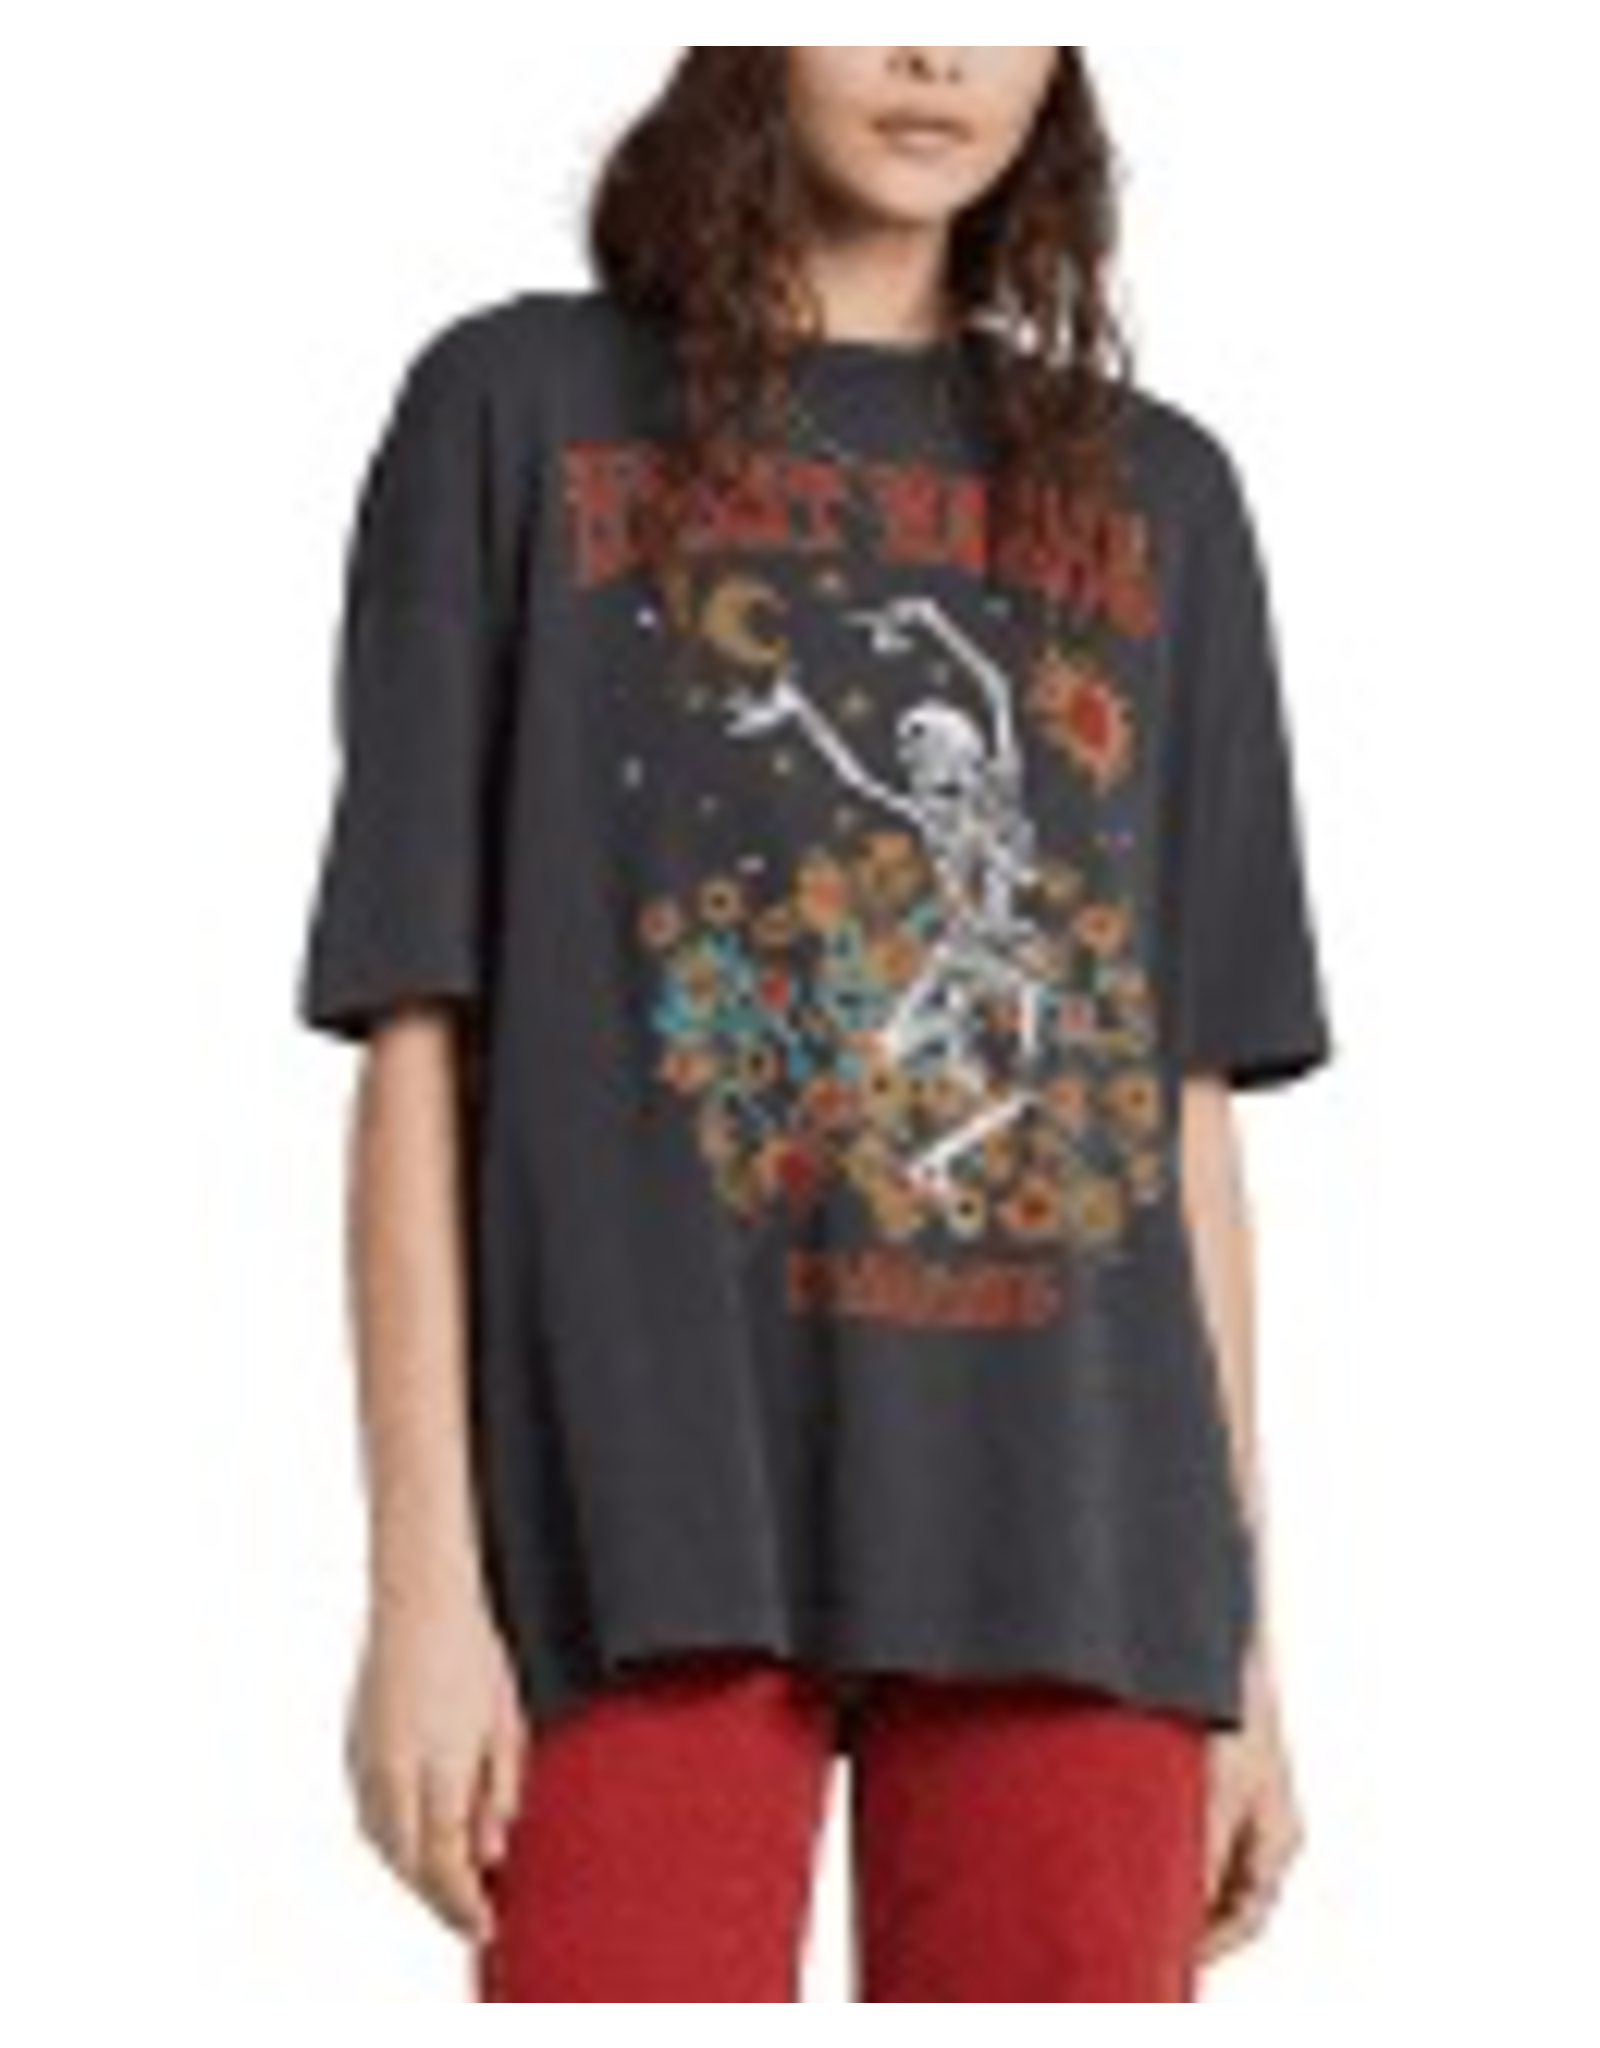 Play to your edgy side in Billabong's skeleton-printed graphic tee.